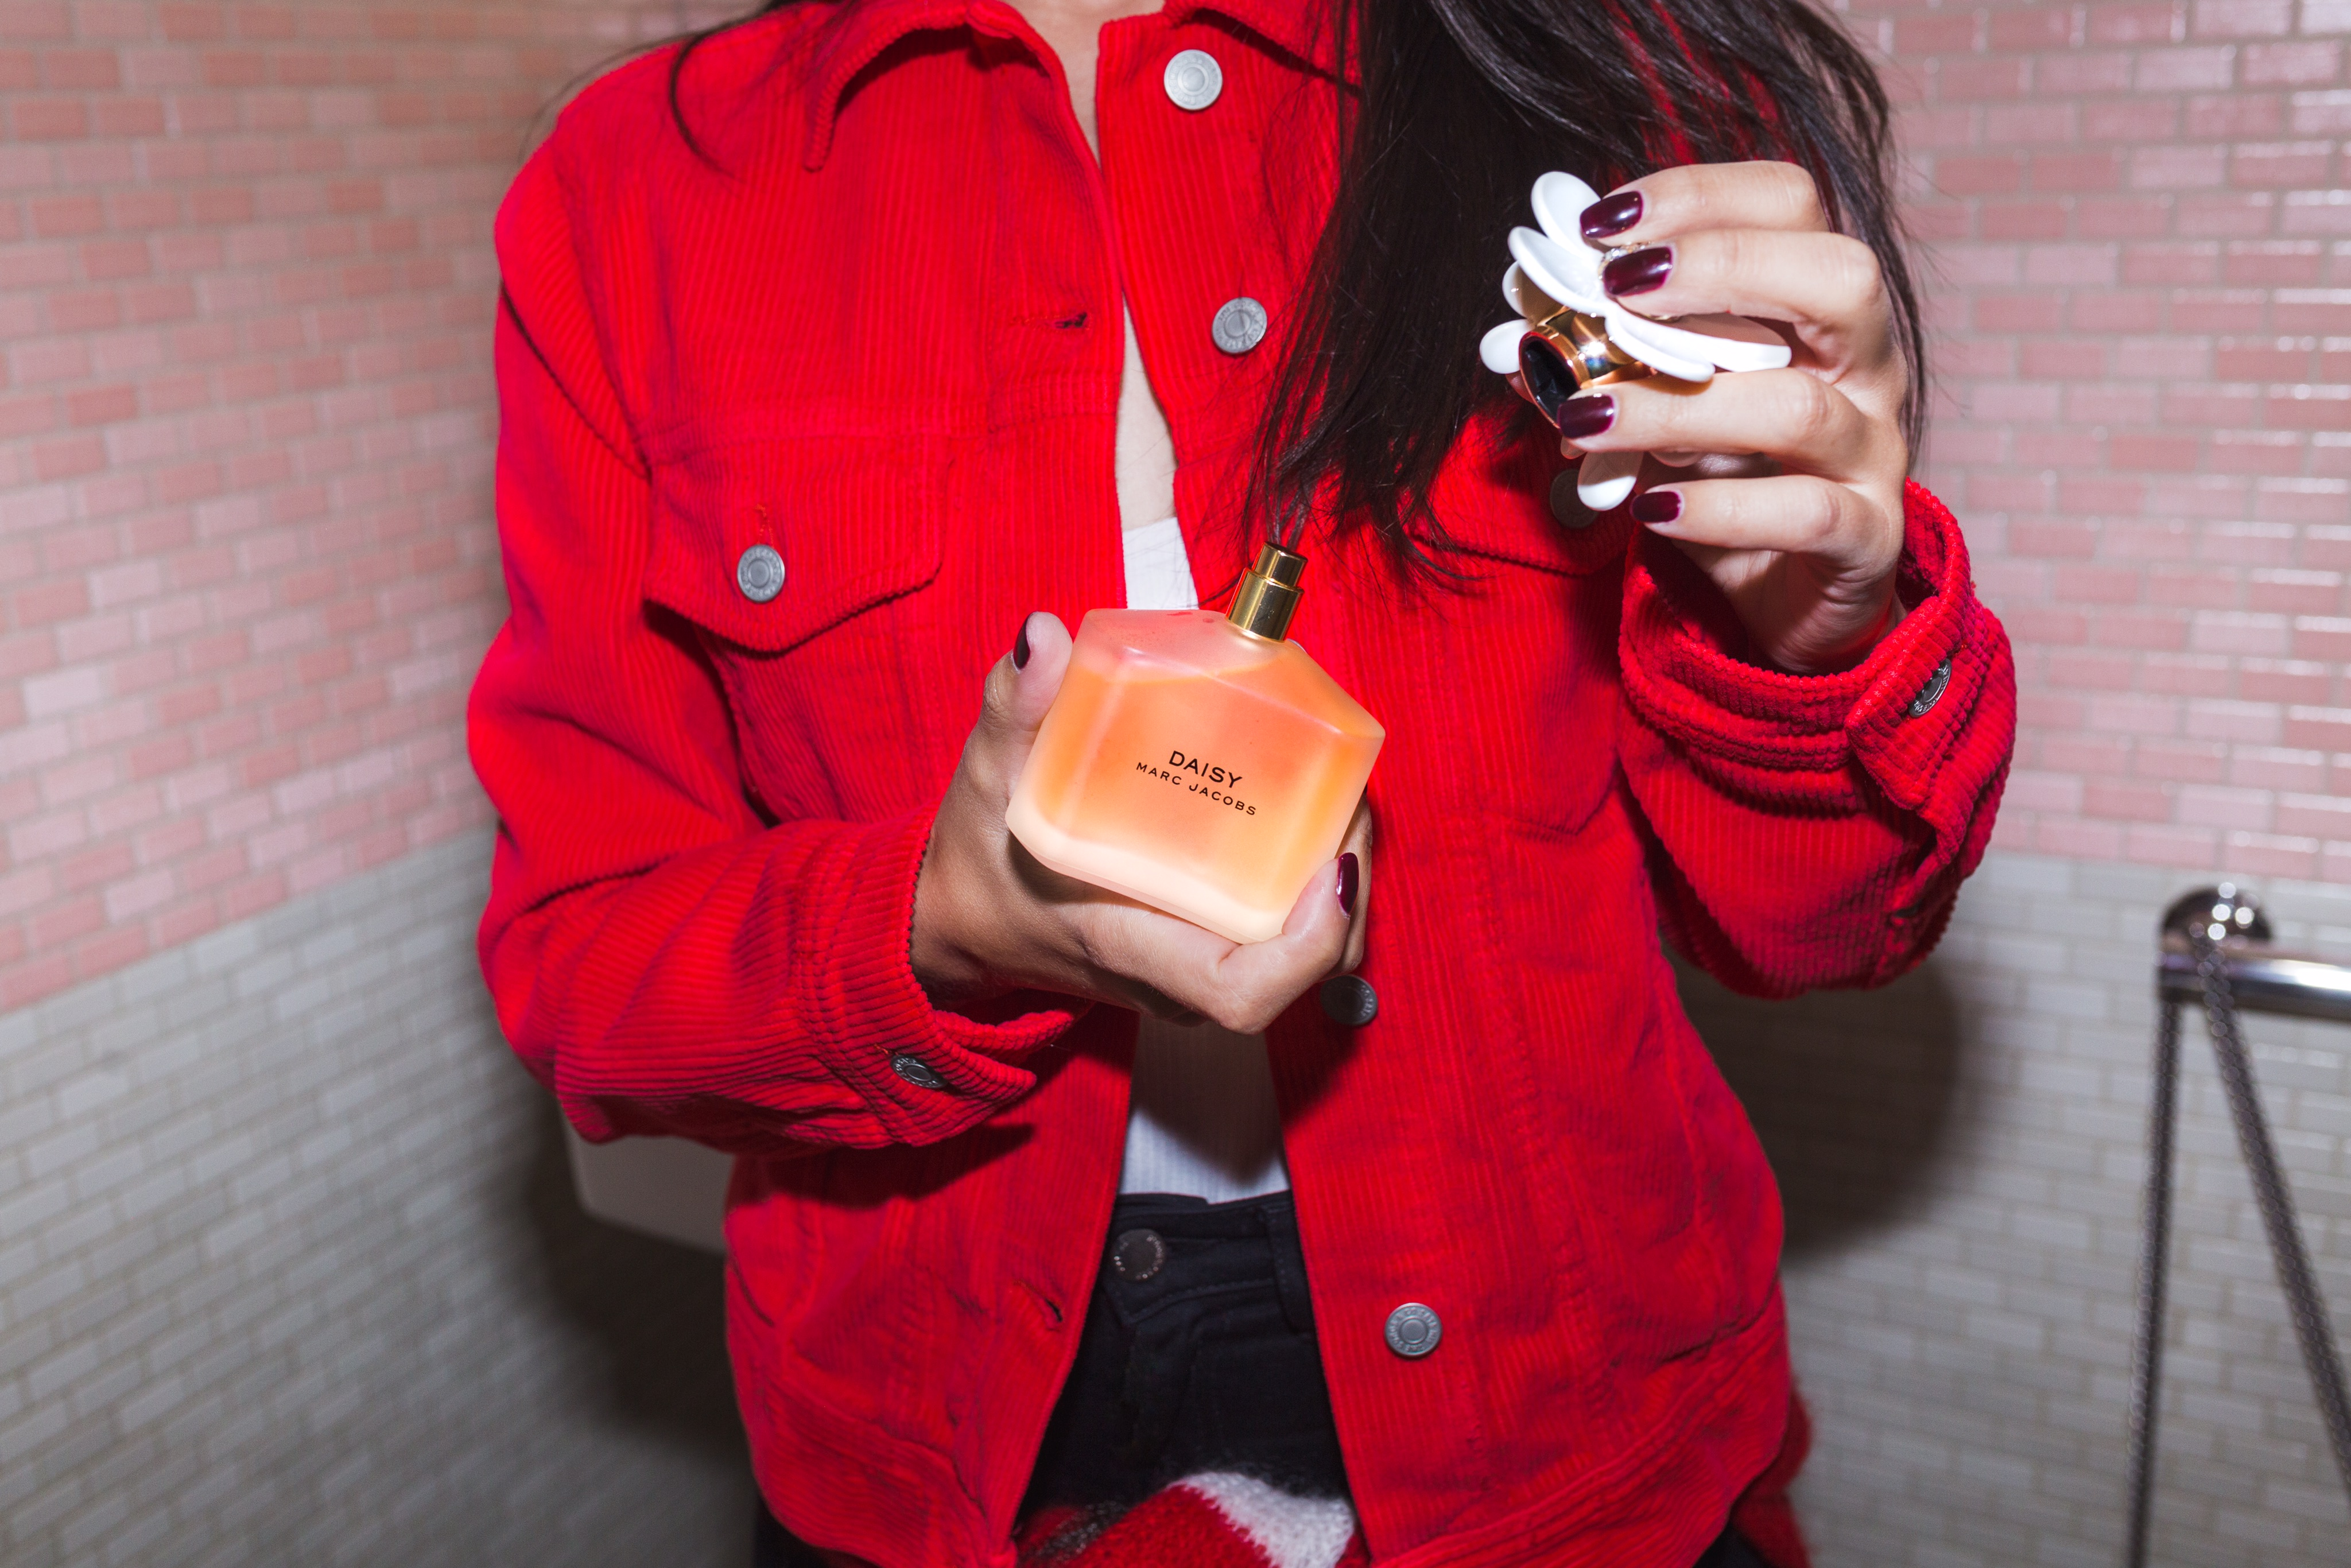 Actress and Influencer Marta Pozzan for MARC JACOBS DAISY